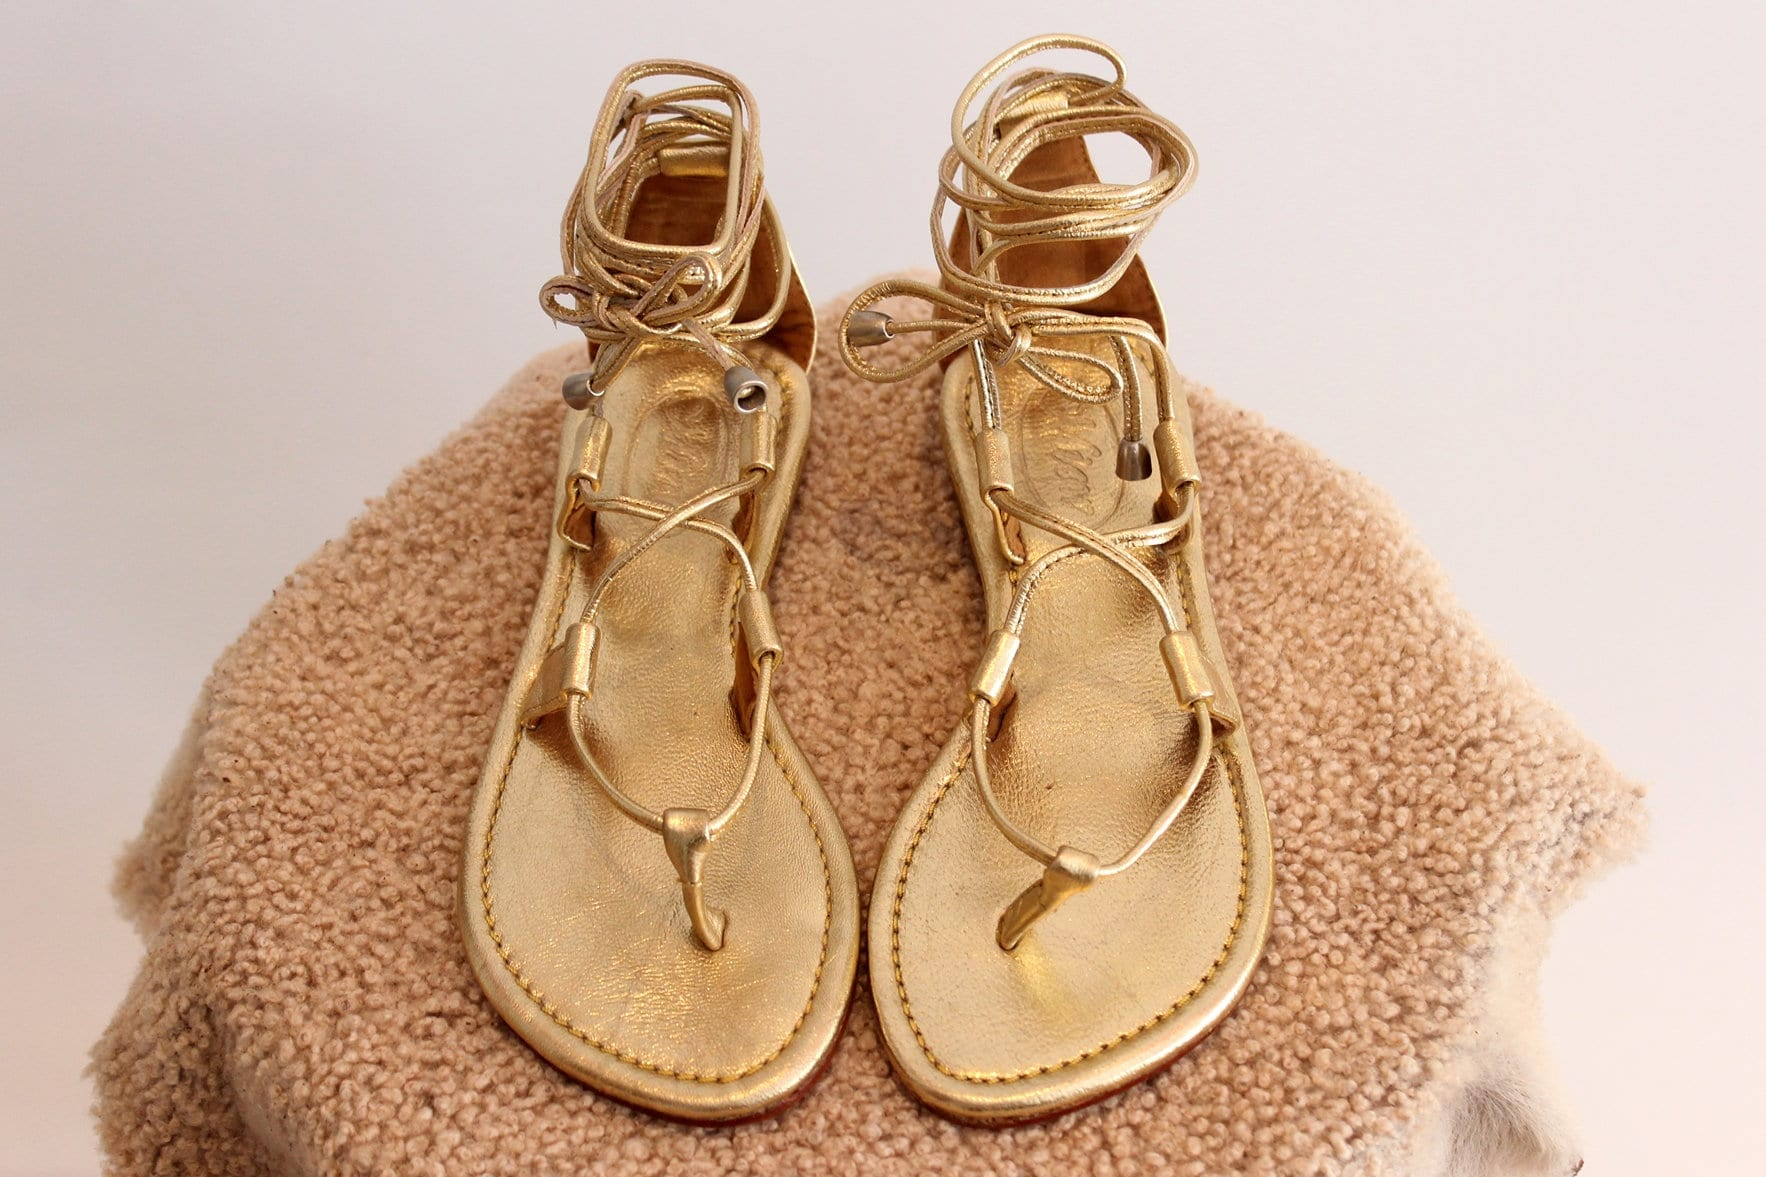 GOLD LEATHER SANDALS, Bohemian Sandals, Summer Flats, Lace Up Sandals. Flat Sandals, Boho Sandals, Women Sandals, Small Size Usa 4 to 12.